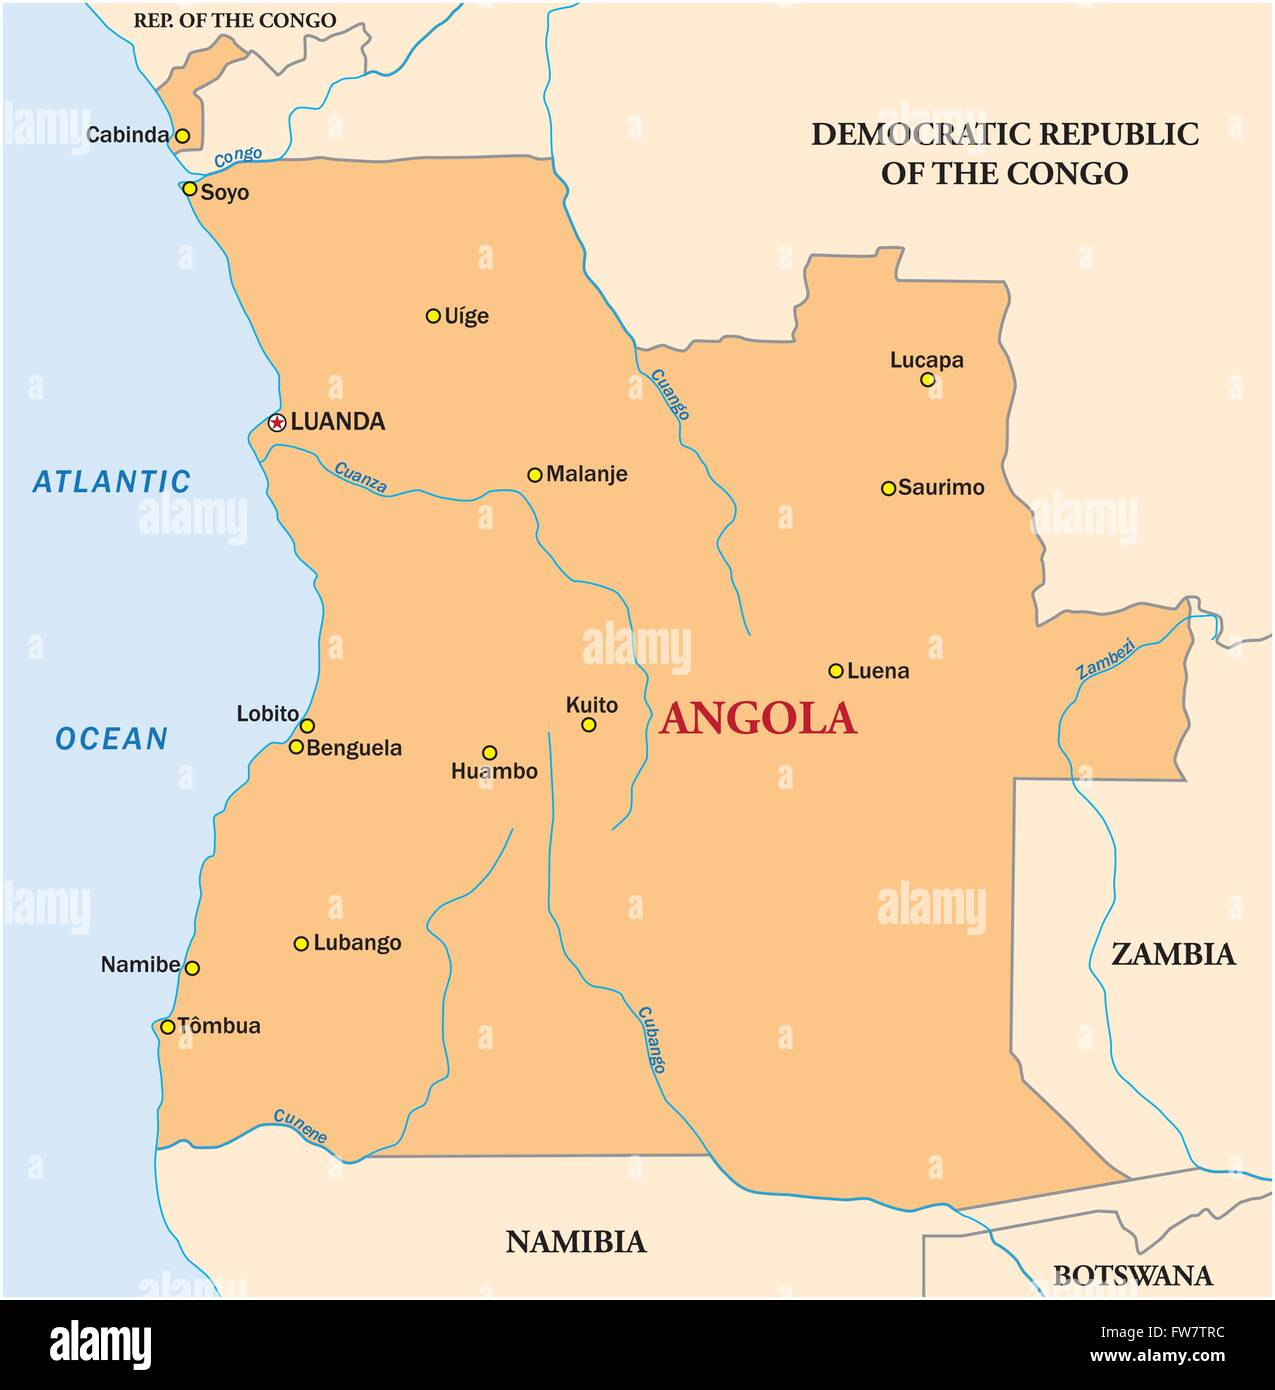 simple vector map of the state of Angola Stock Vector Art ... on map of armenia, map of ghana, map of lesotho, map of southern europe, map of argentina, map of africa, map of albania, map of namibia, map of philippines, map of zambia, map of mozambique, map of burkina faso, map of bolivia, map of chile, map of african countries, map of botswana, map of madagascar, map of djibouti, map of latvia, map of spain,